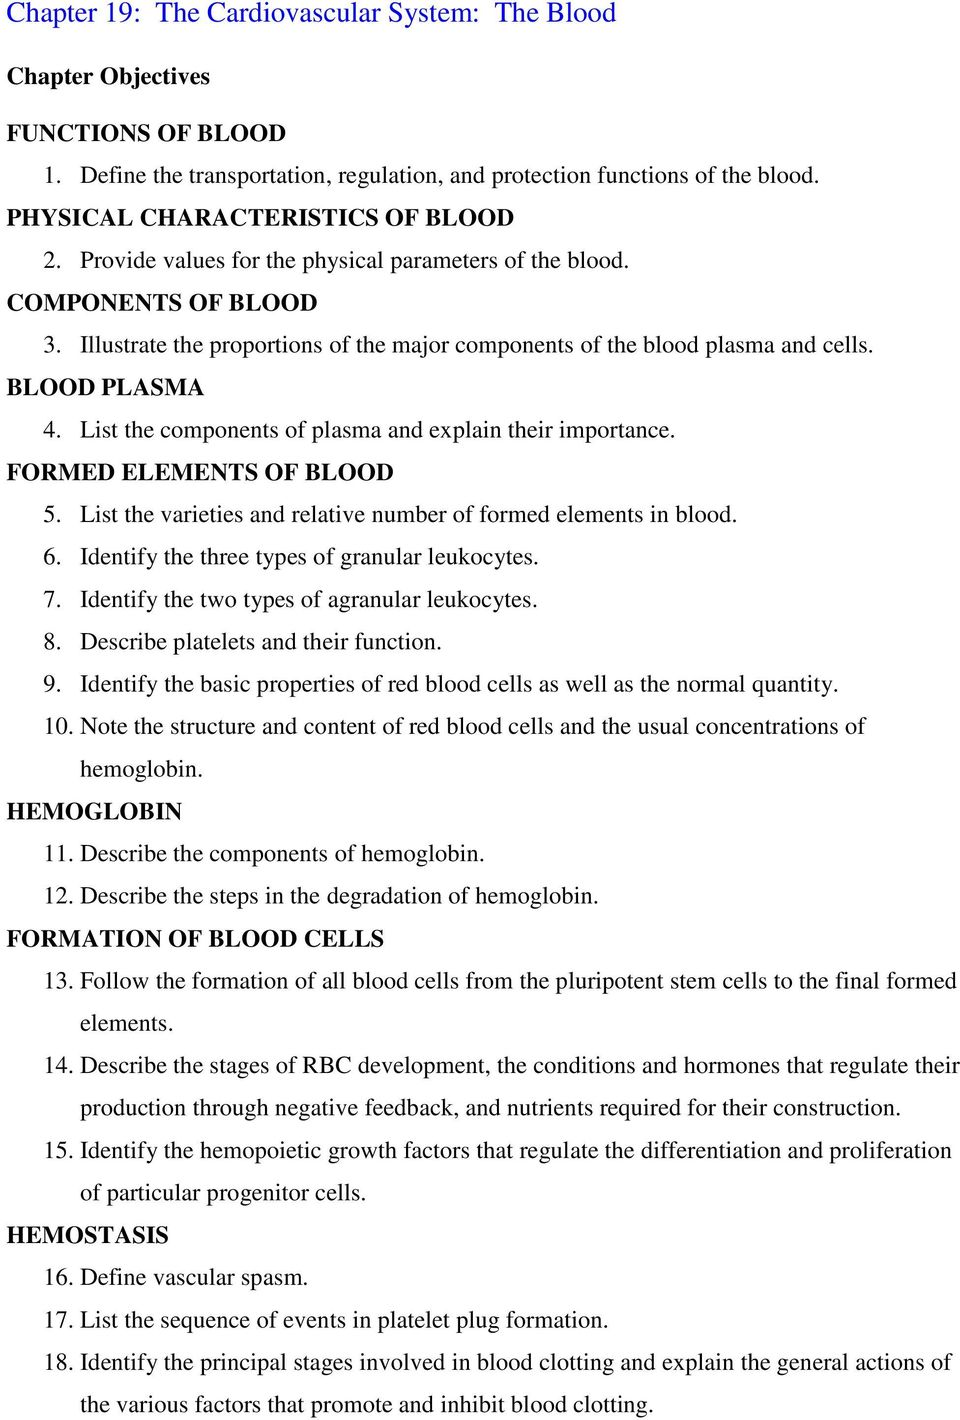 Chapter 19 The Cardiovascular System The Blood Pdf